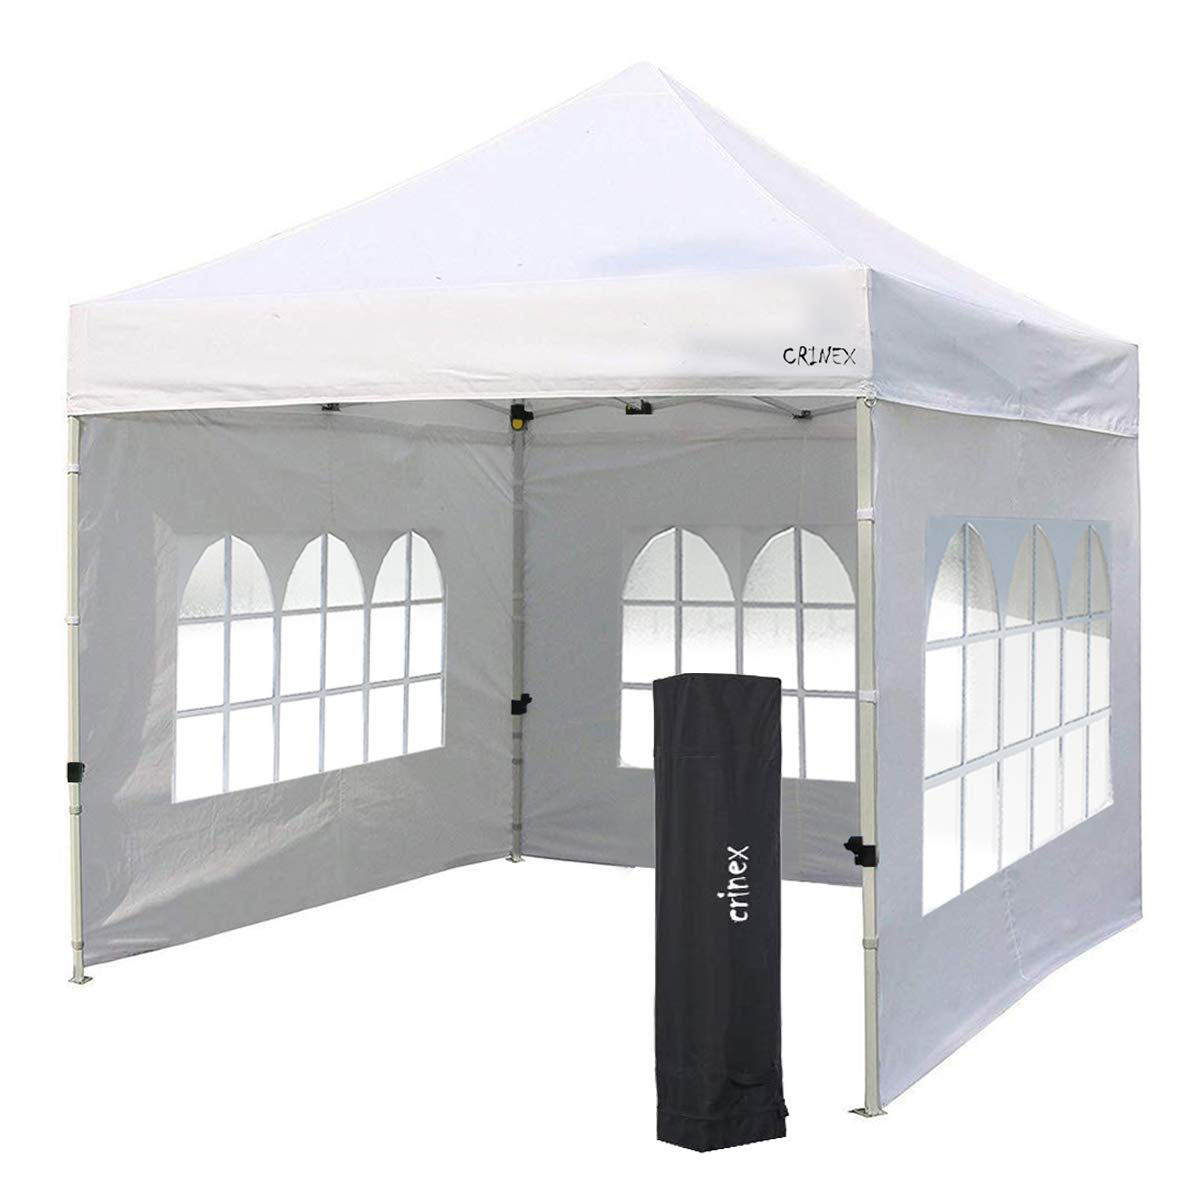 CRINEX 10x10 Canopy Tent White, Pop Up Portable Shade Instant Folding Outdoor Gazebo Canopy Tent with 3 Removable Side Walls and Carry Bag(2019 Upgrade)